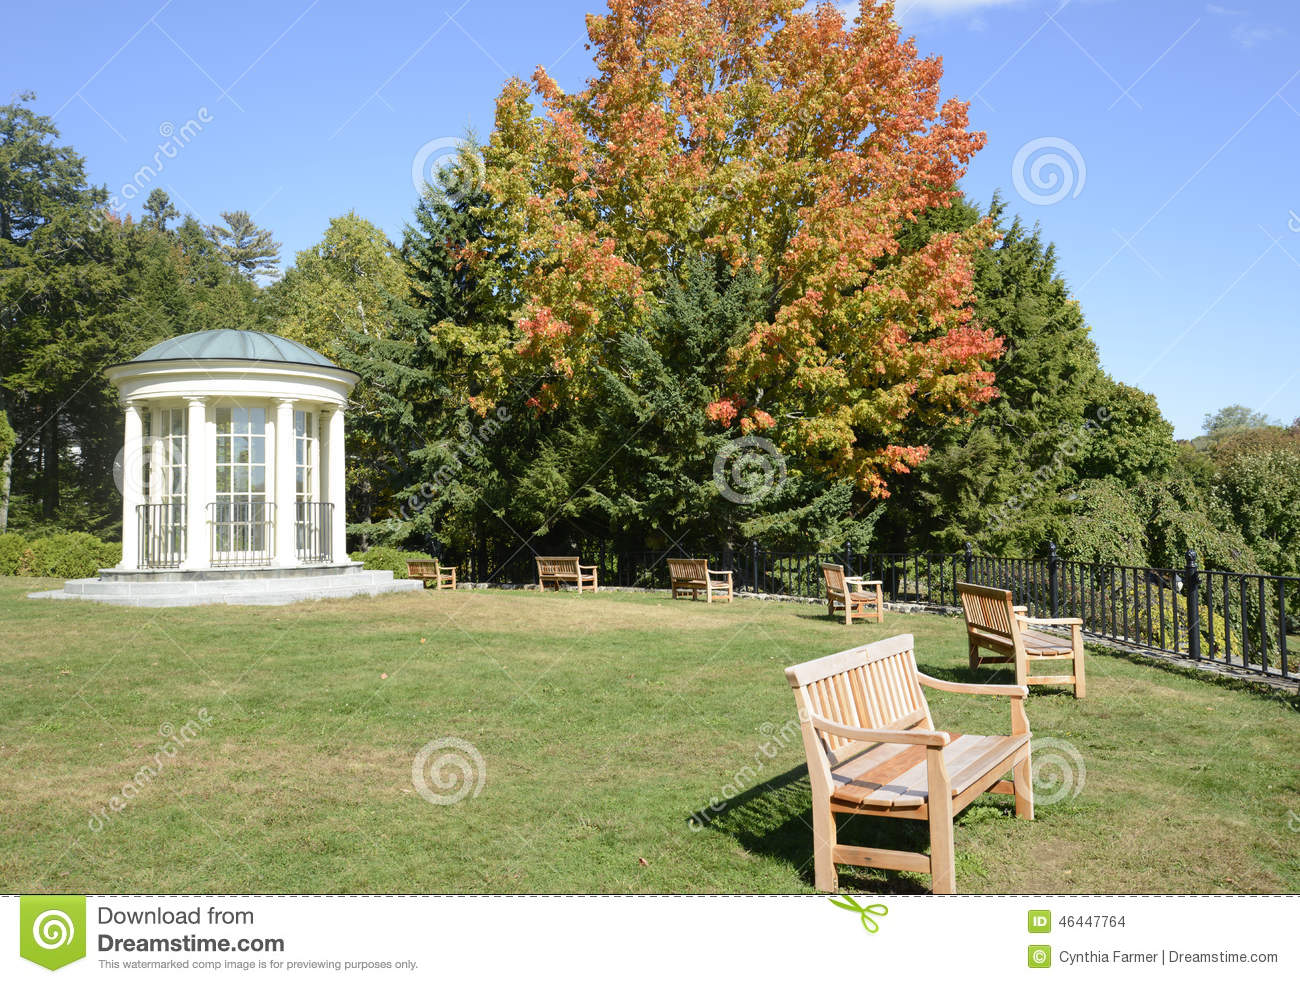 Round Gazebo And Wood Park Benches Stock Photo - Image of wood, blue ...